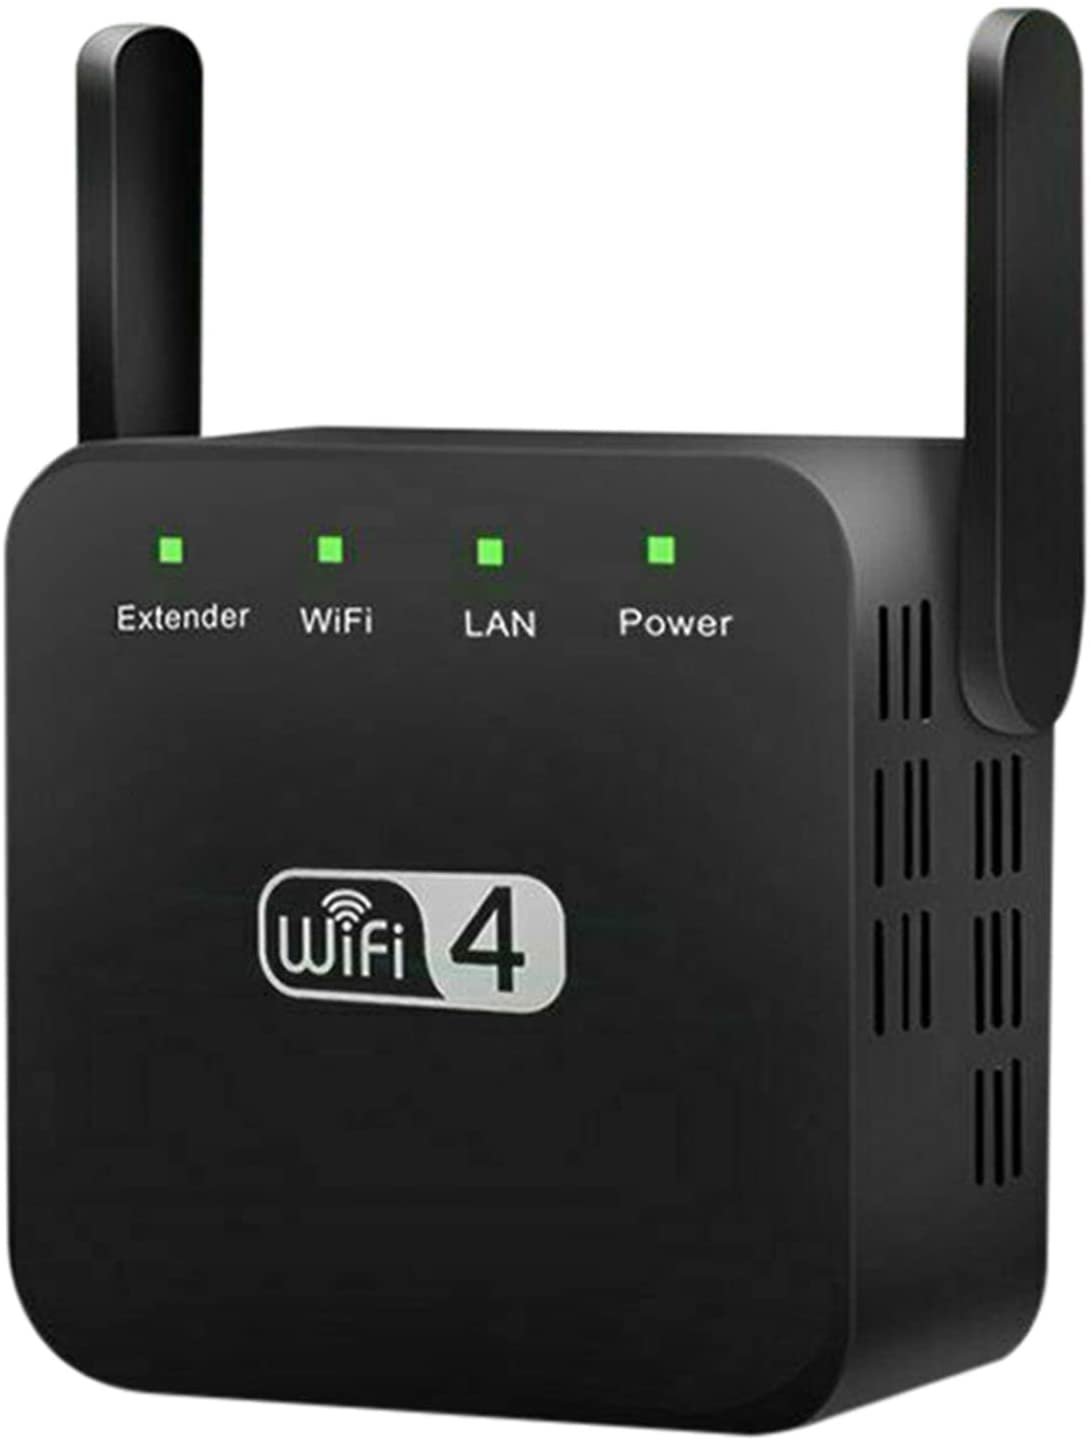 MiaoKa 2.4Ghz Dual Band WiFi Extender, 300M Internet Range Router Signal Booster